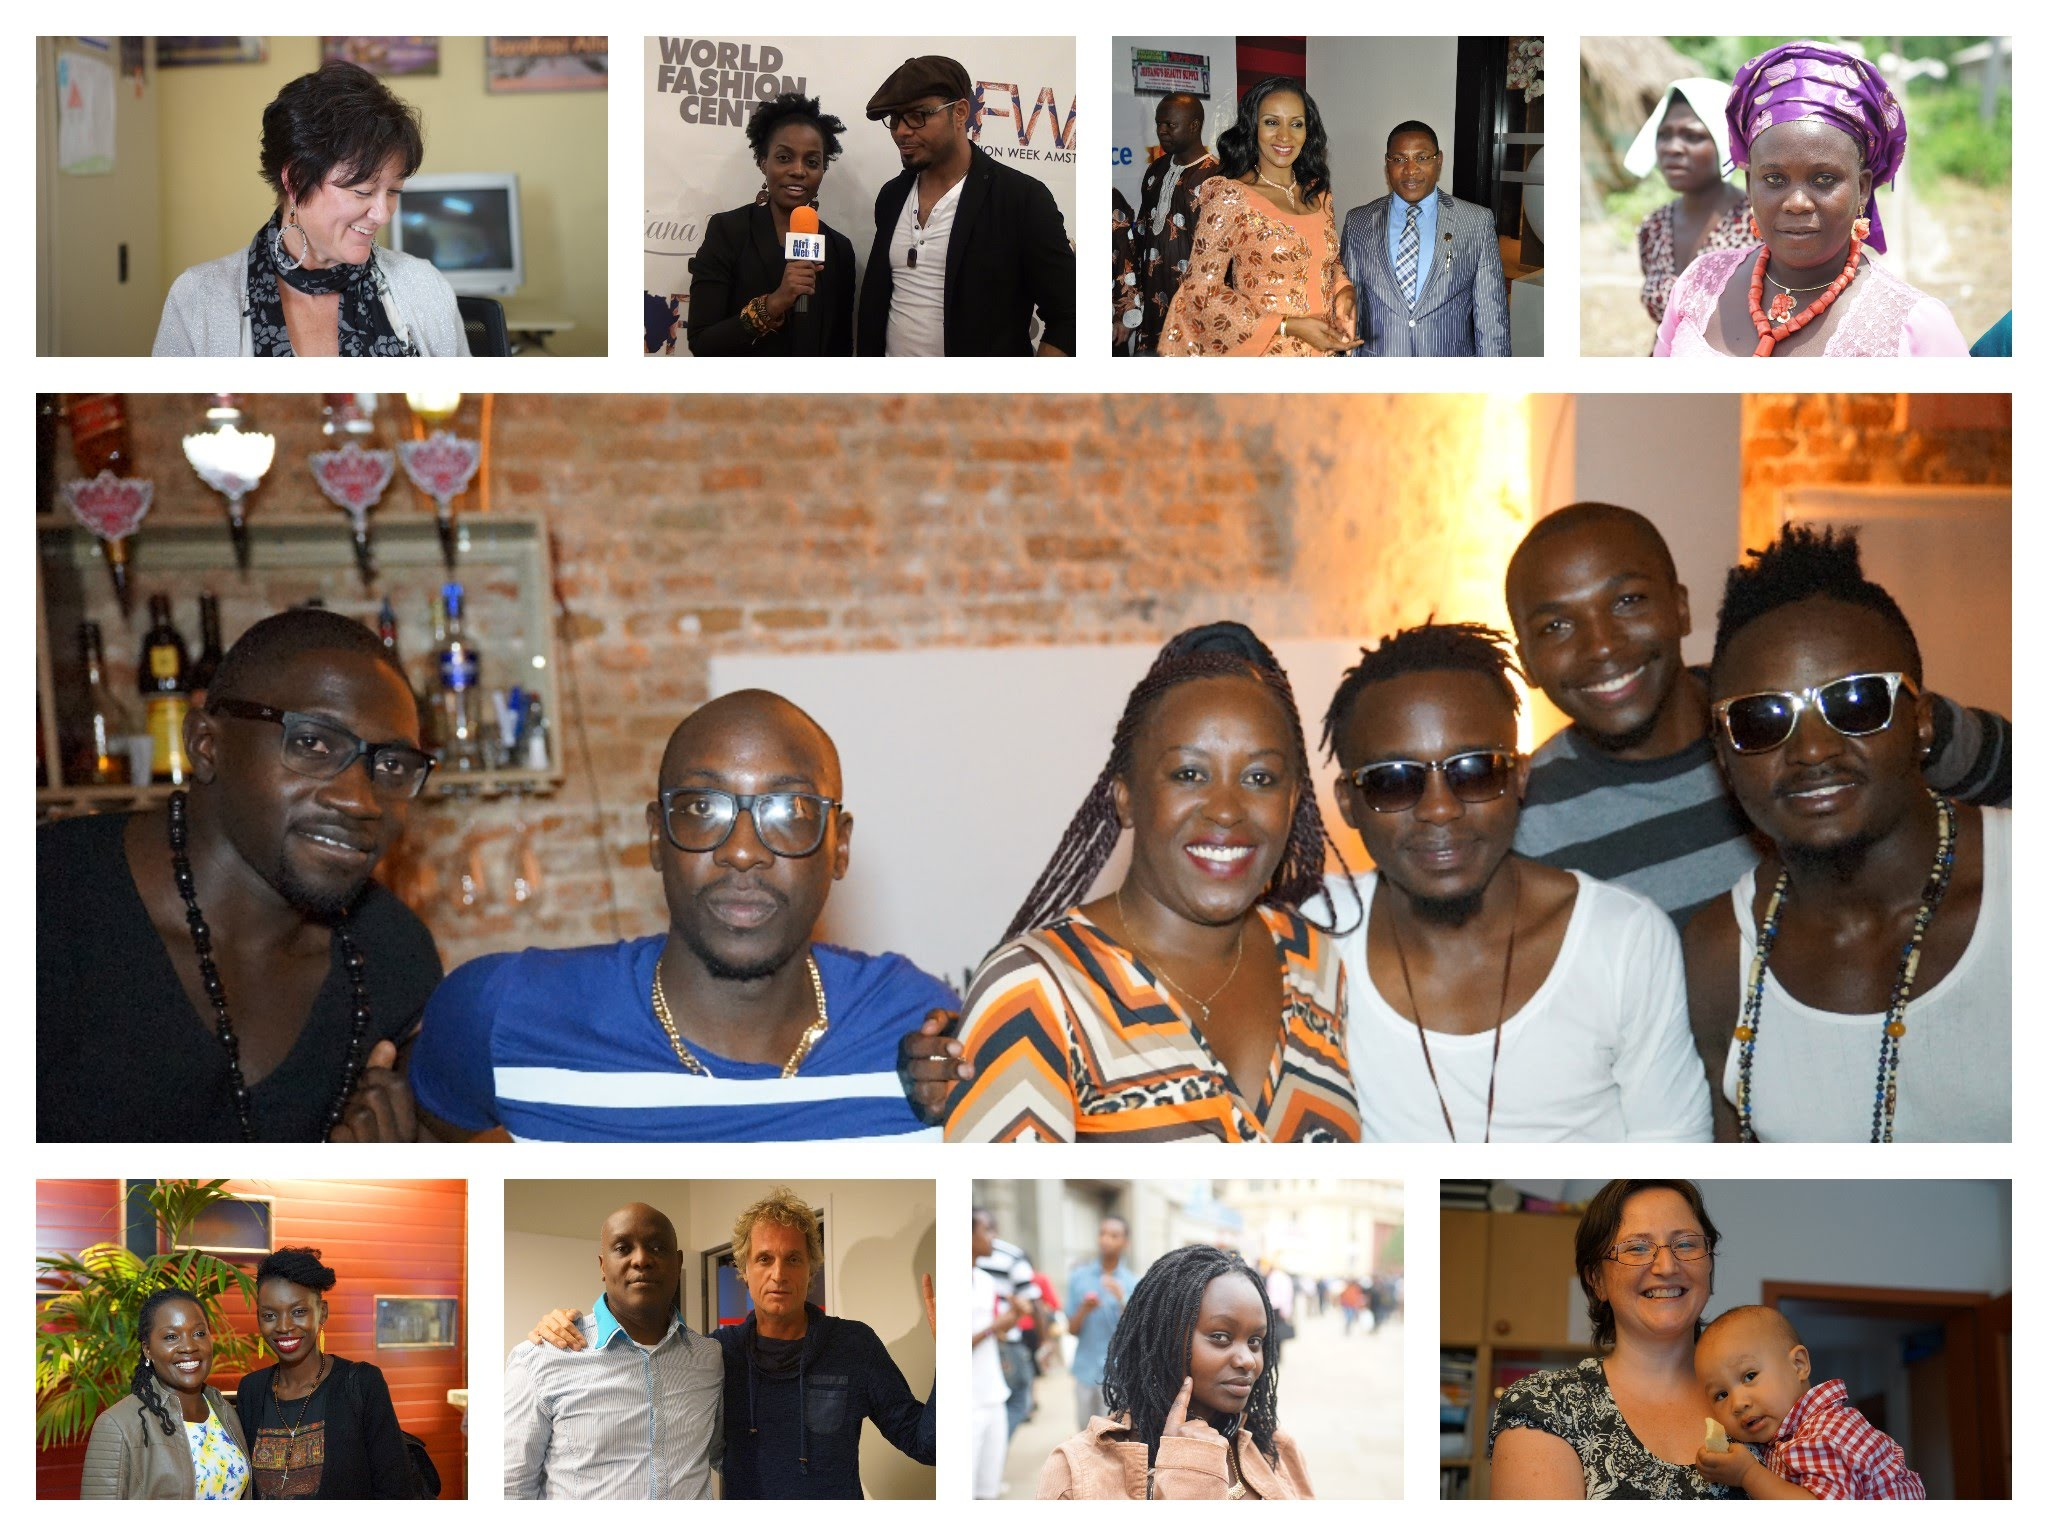 Faces of Africa Web TV 2014